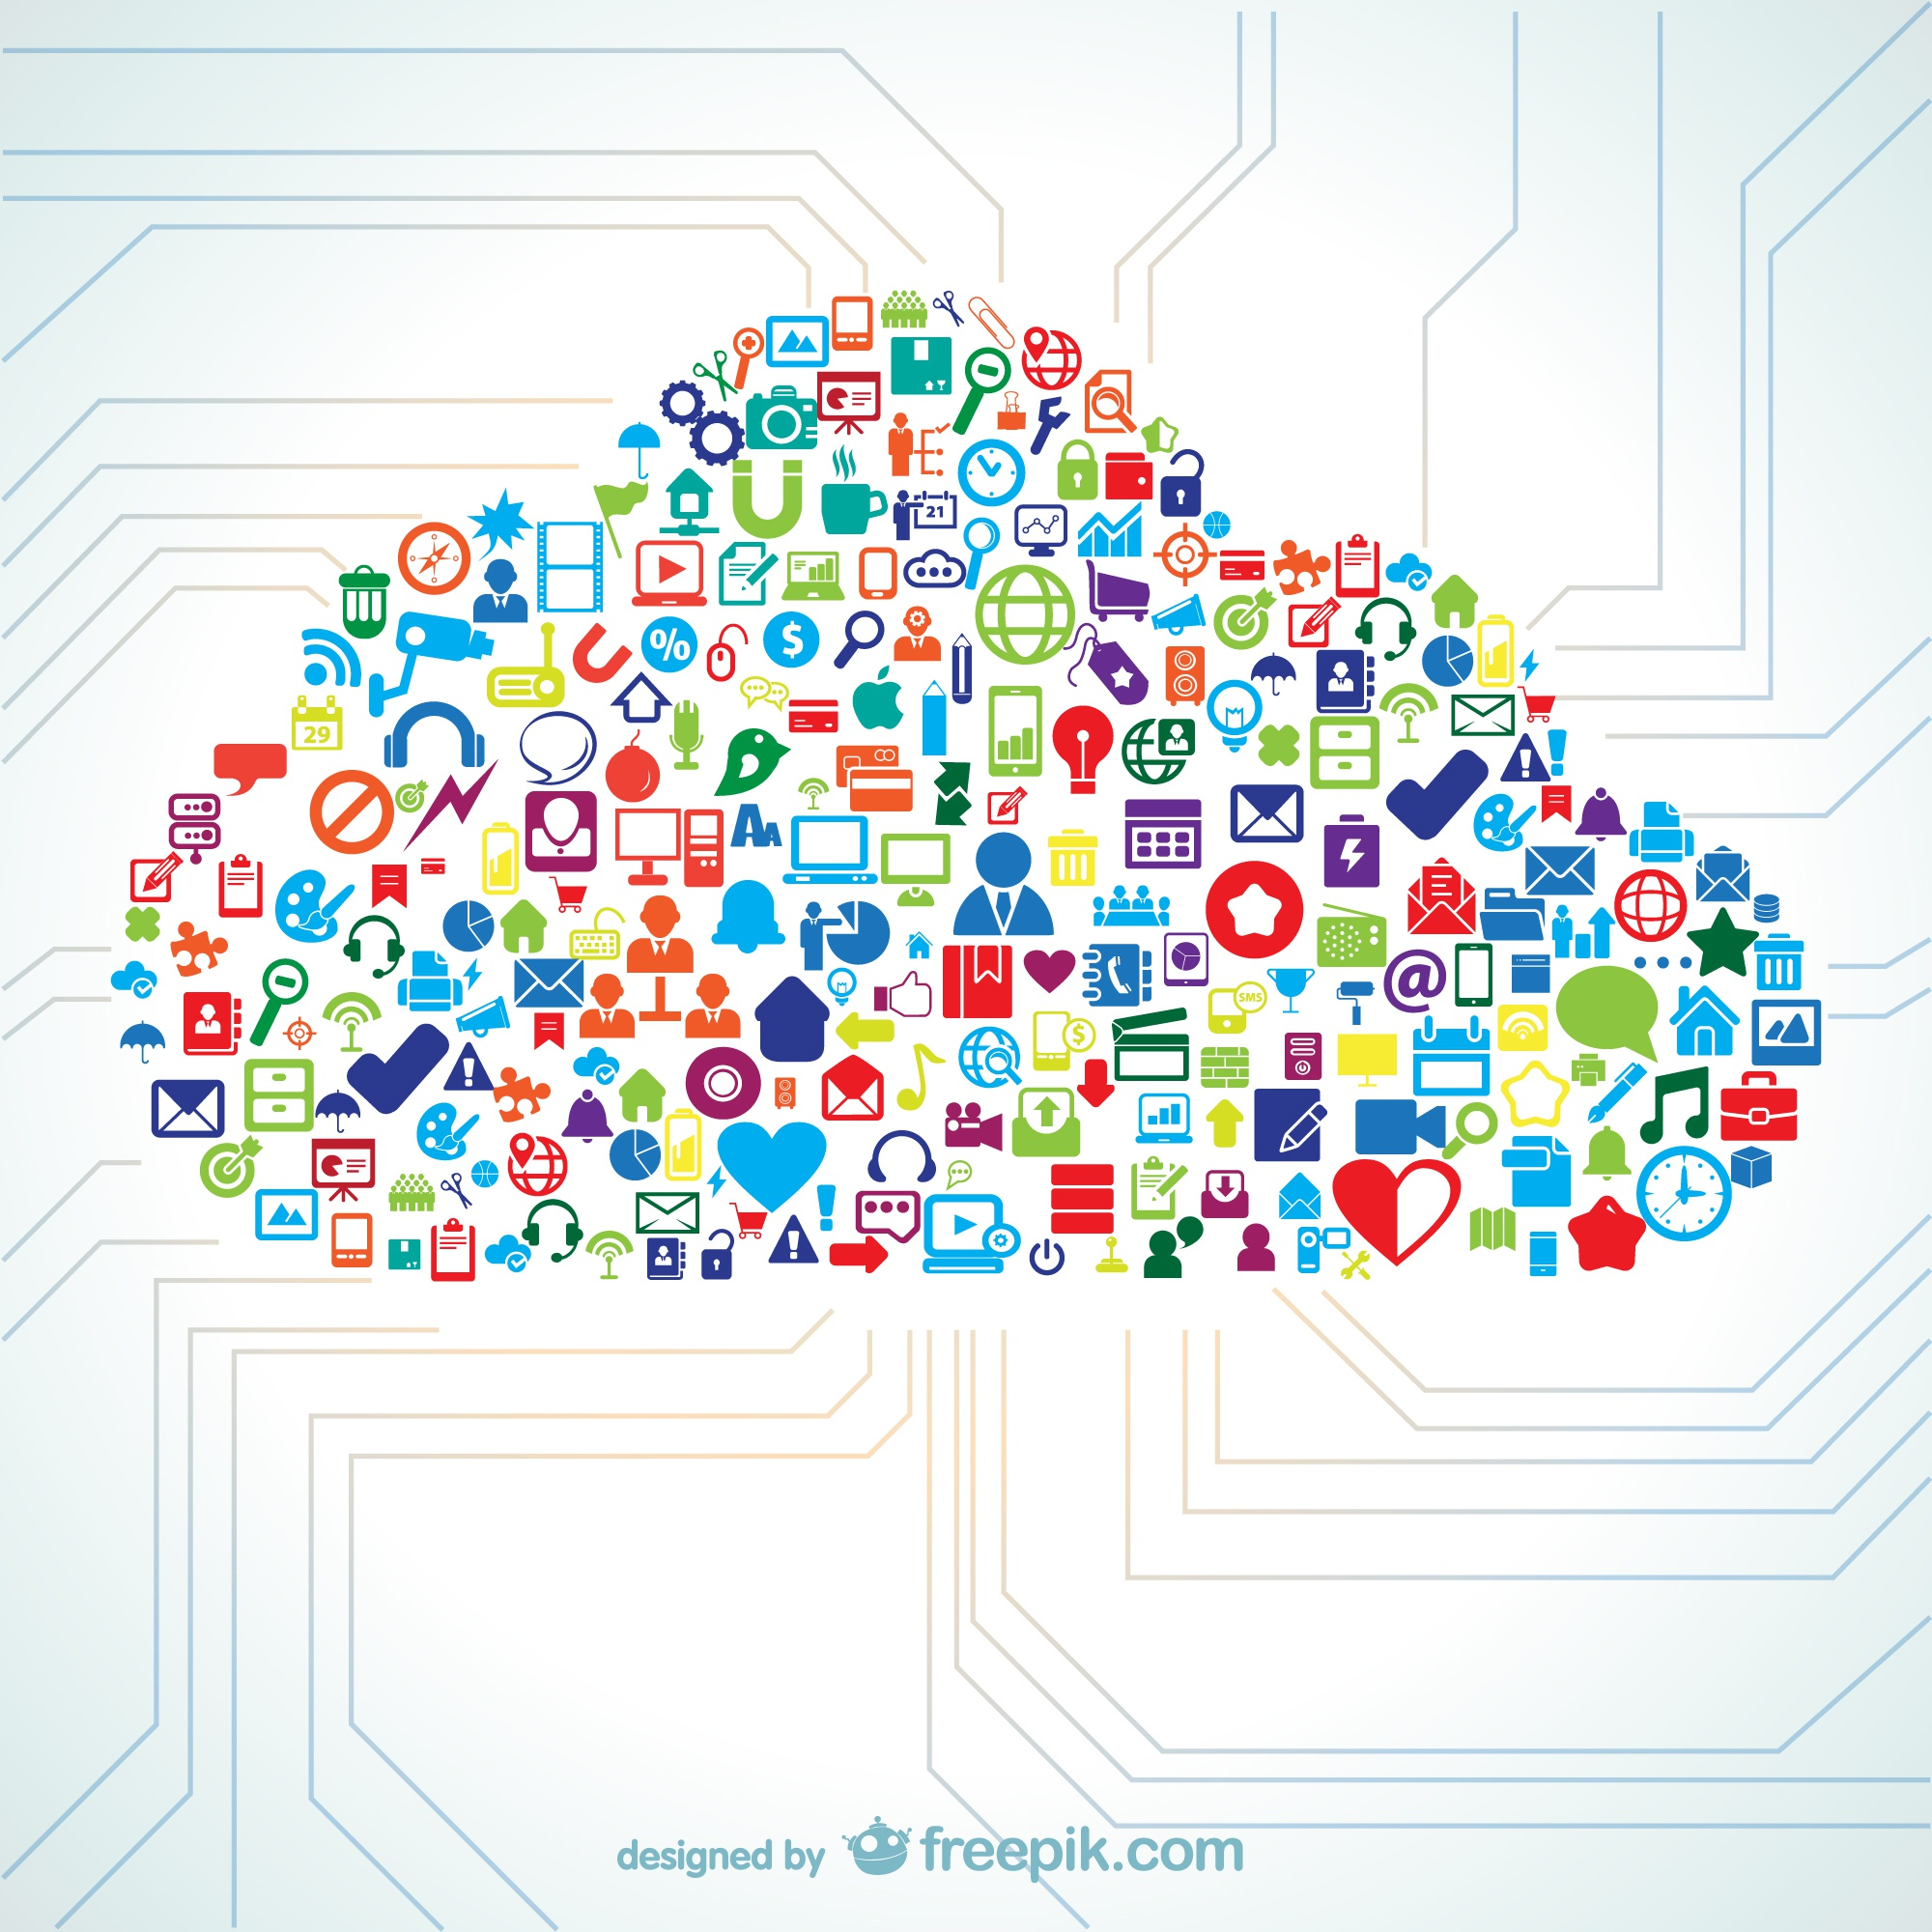 Cloud shape filled with icon vectors